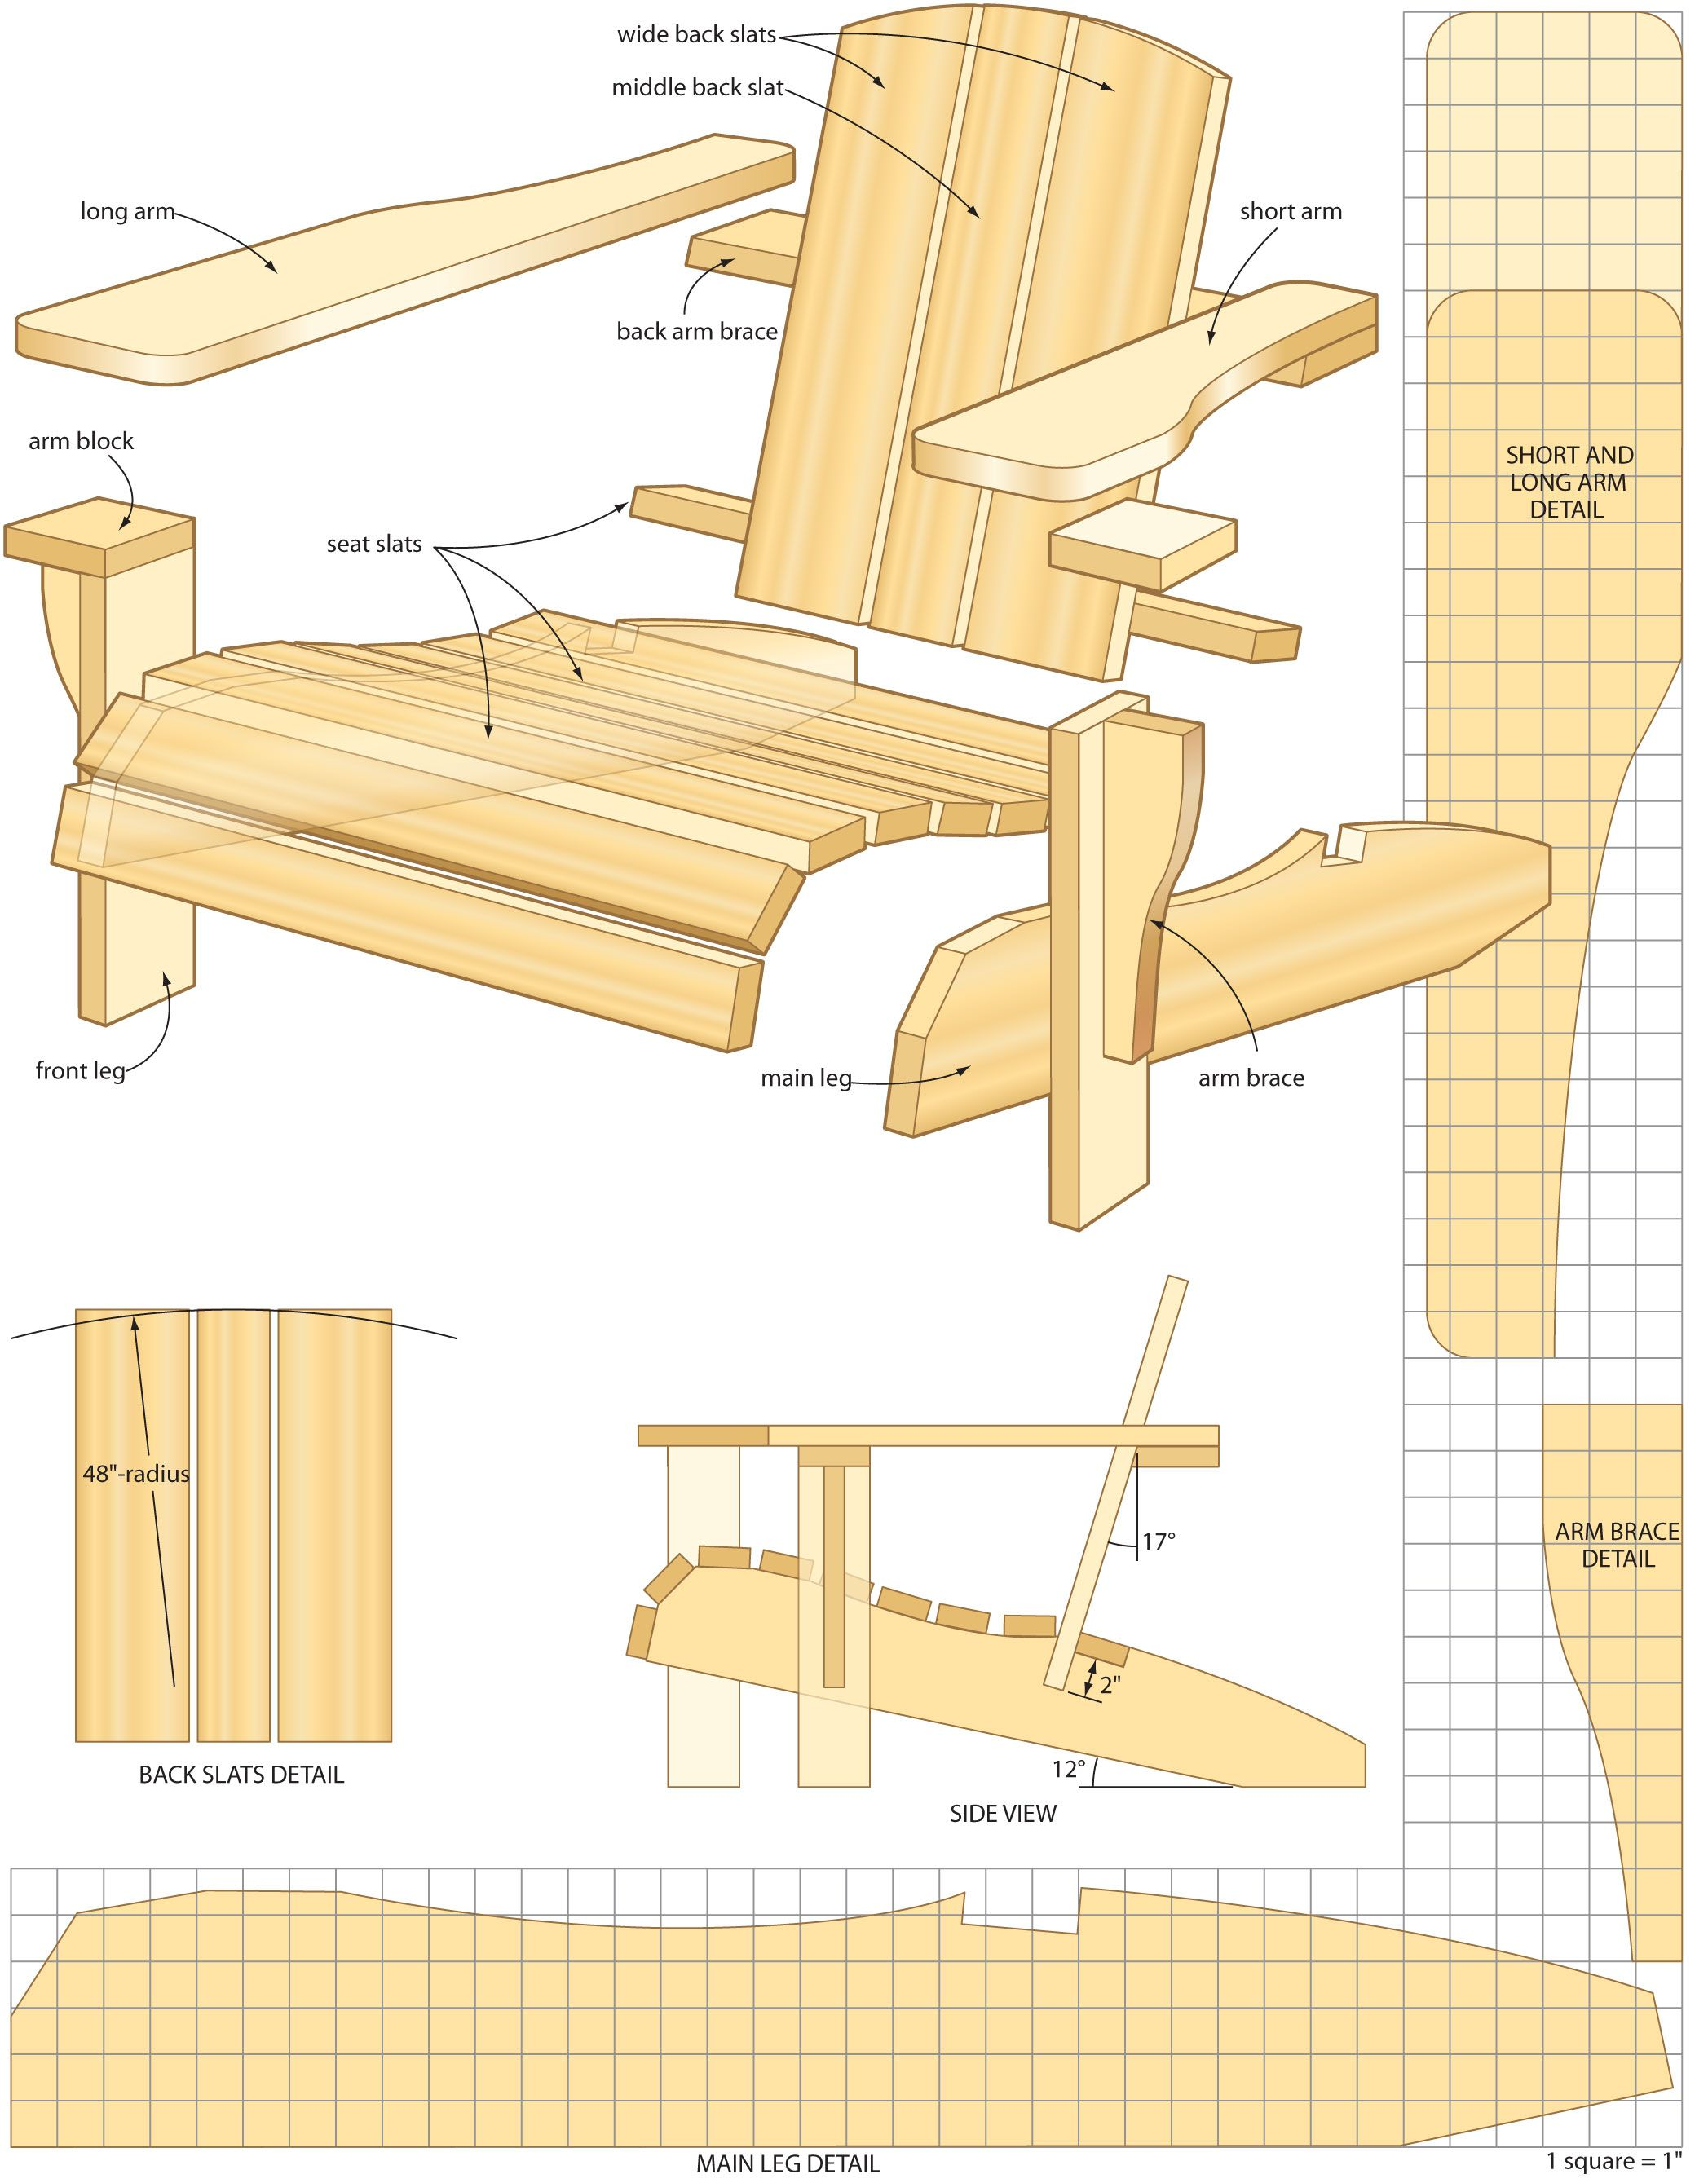 Build This Muskoka Chair Canadian Home Workshop Woodworking Plans Beginner Woodworking Projects Plans Free Woodworking Project Plans